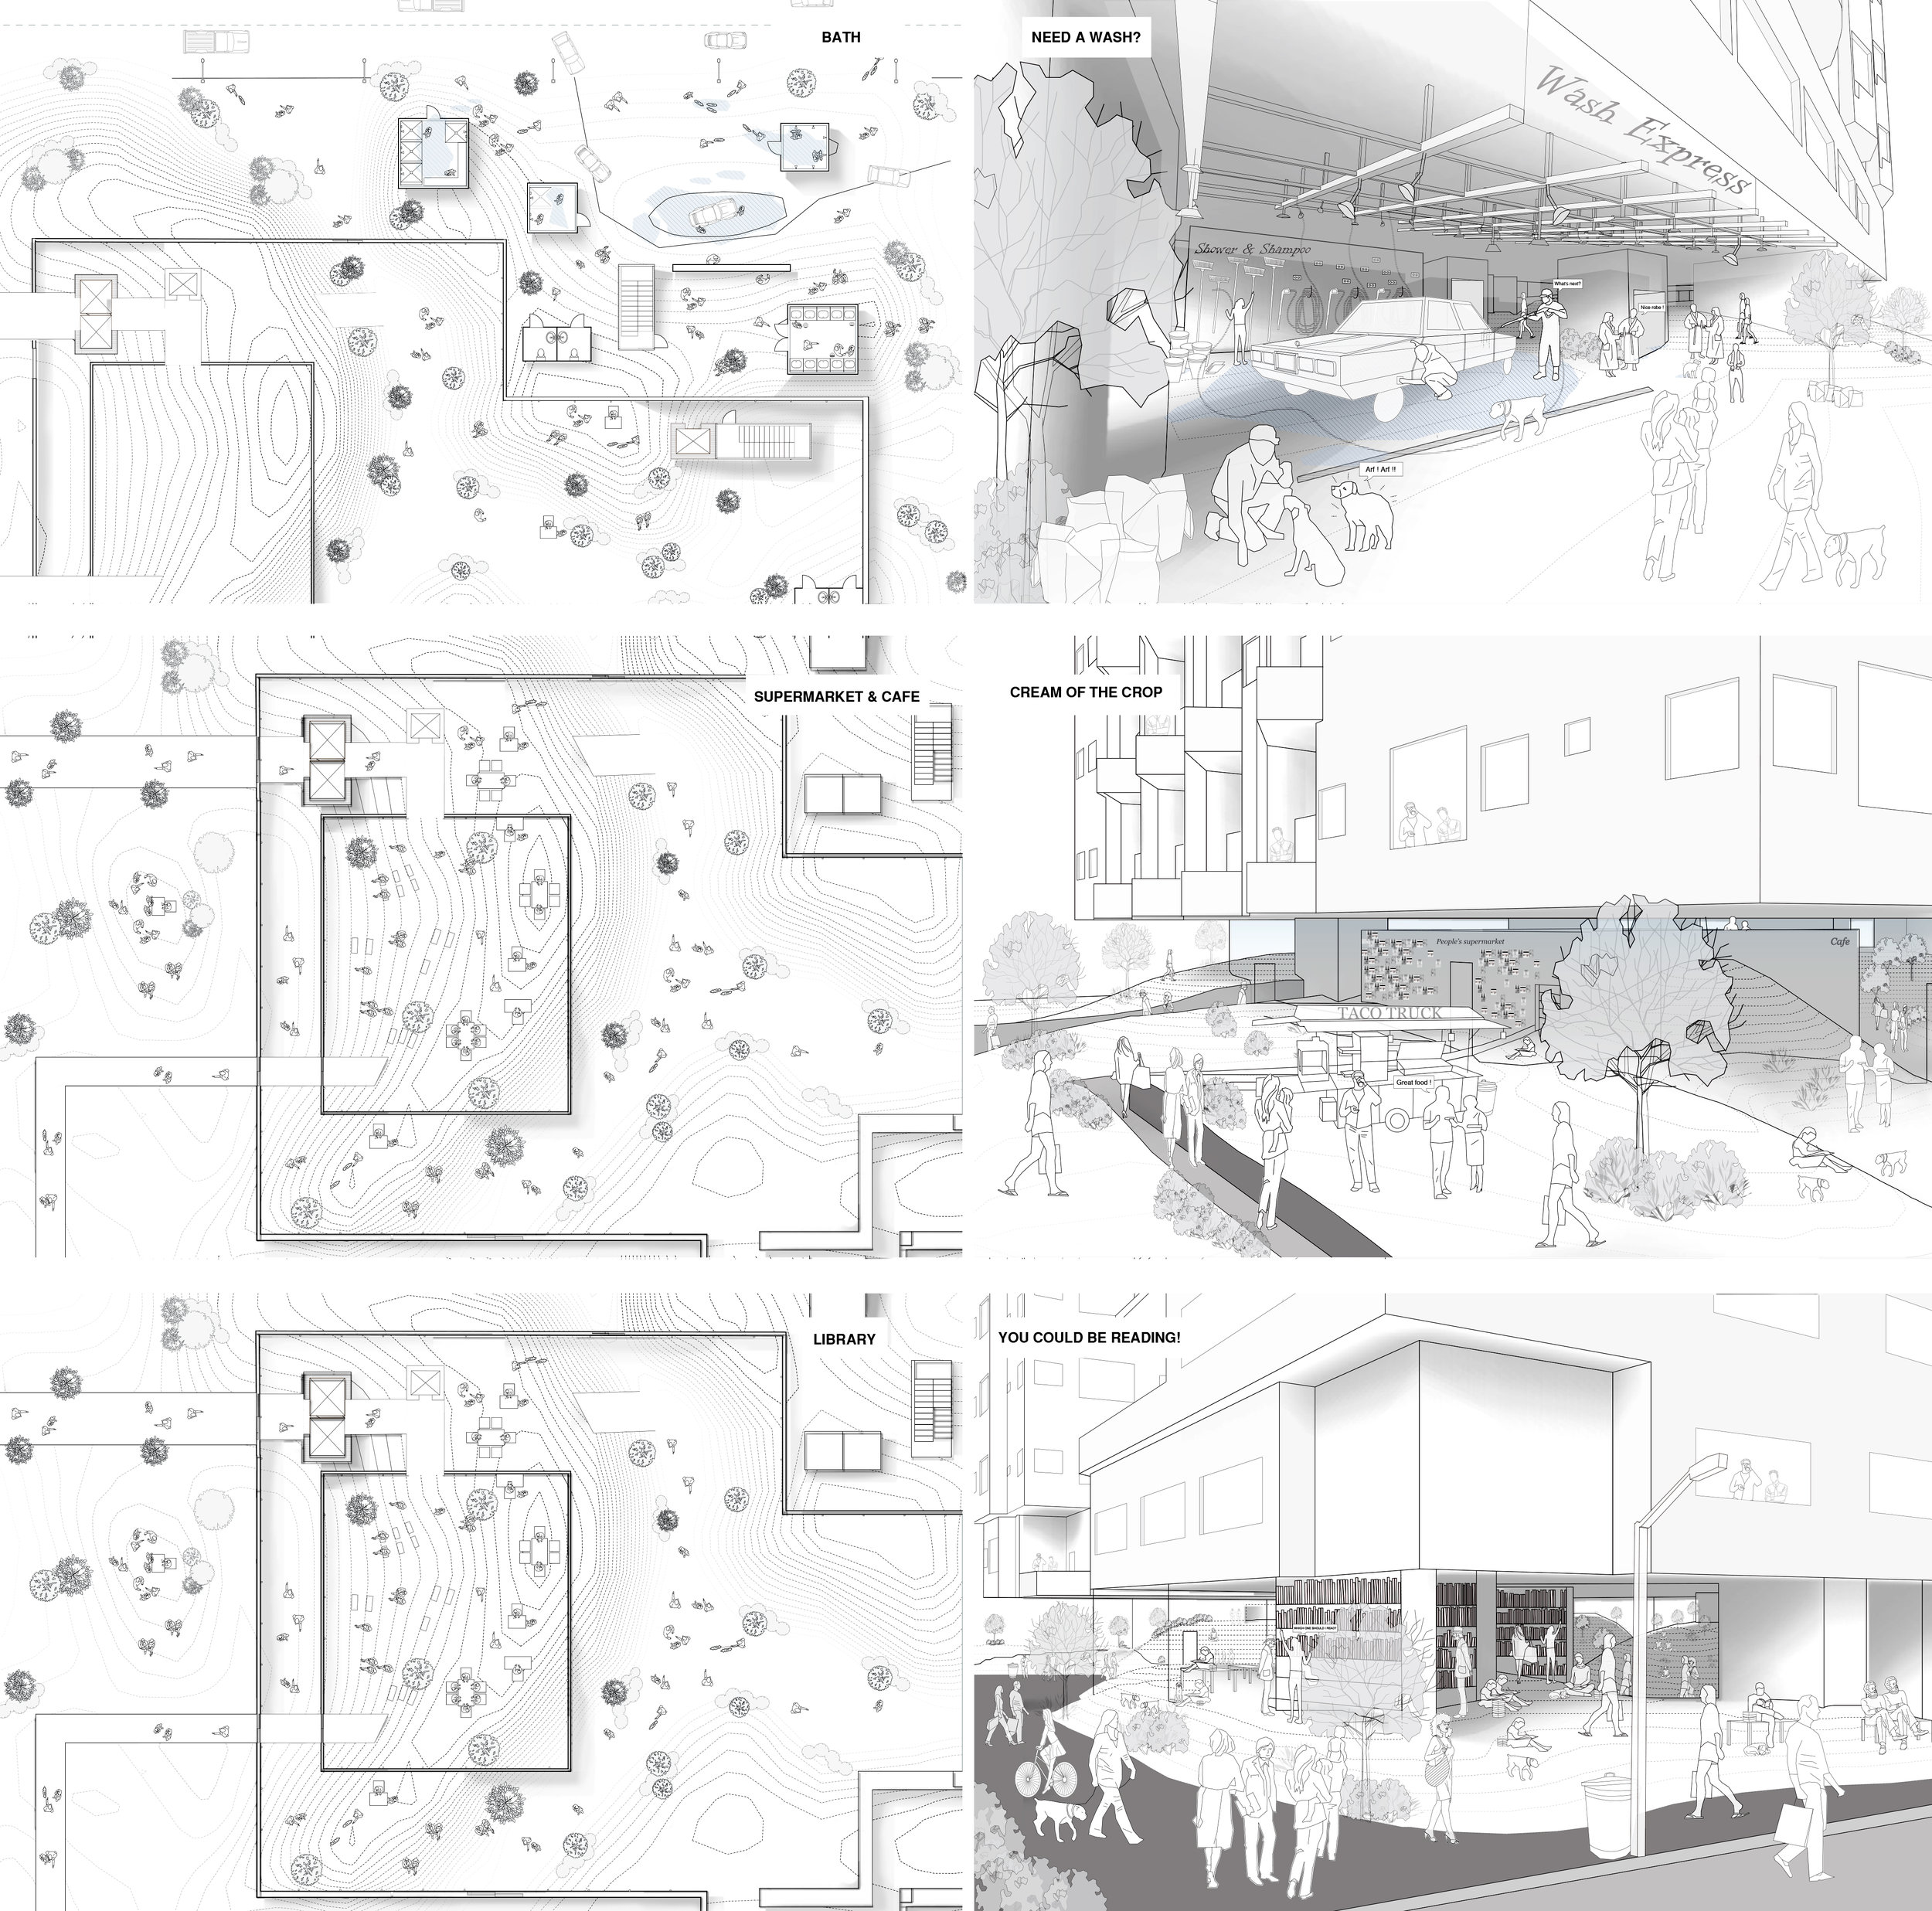 SS+MK_ARCHT-507-04_Pers_Plan.jpg